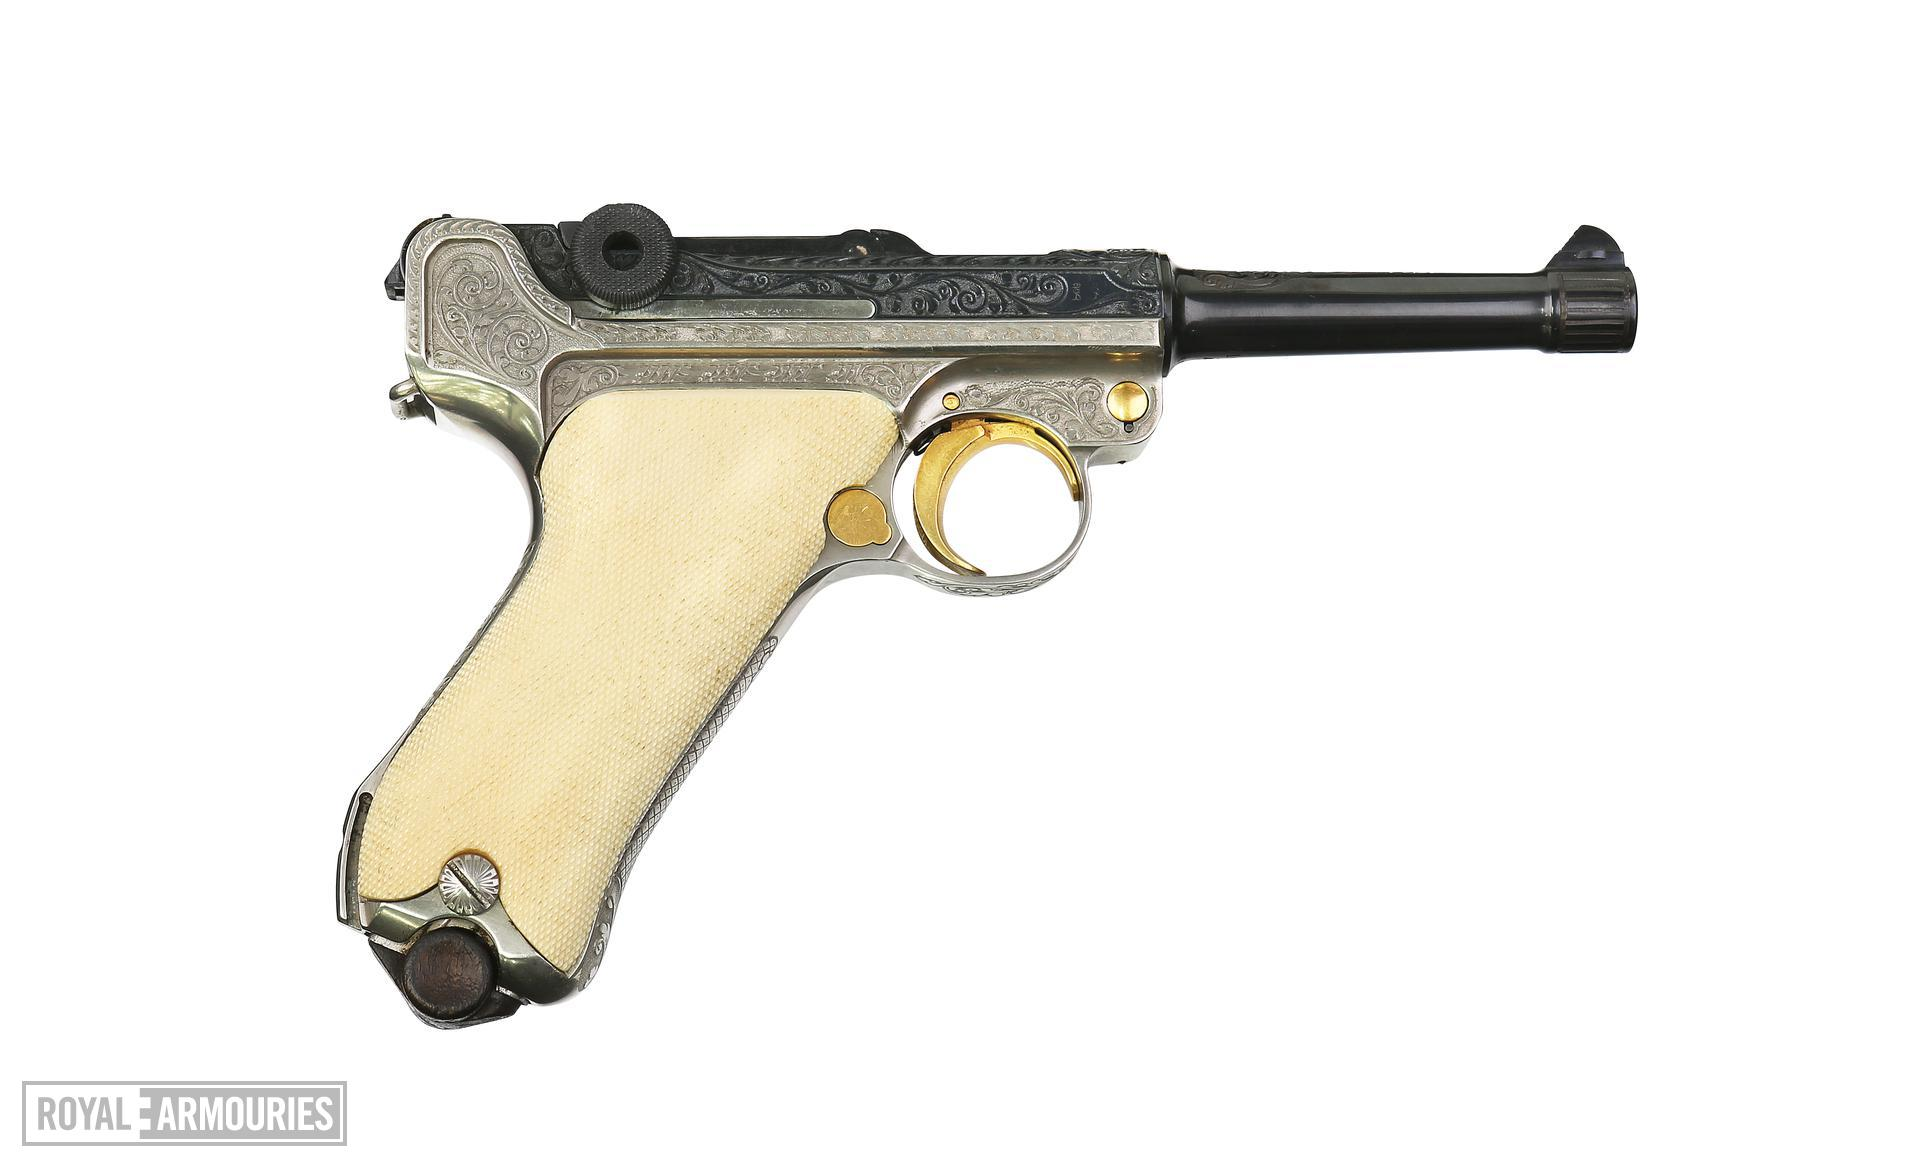 Luger P08, Centrefire self-loading pistol. XII.11476